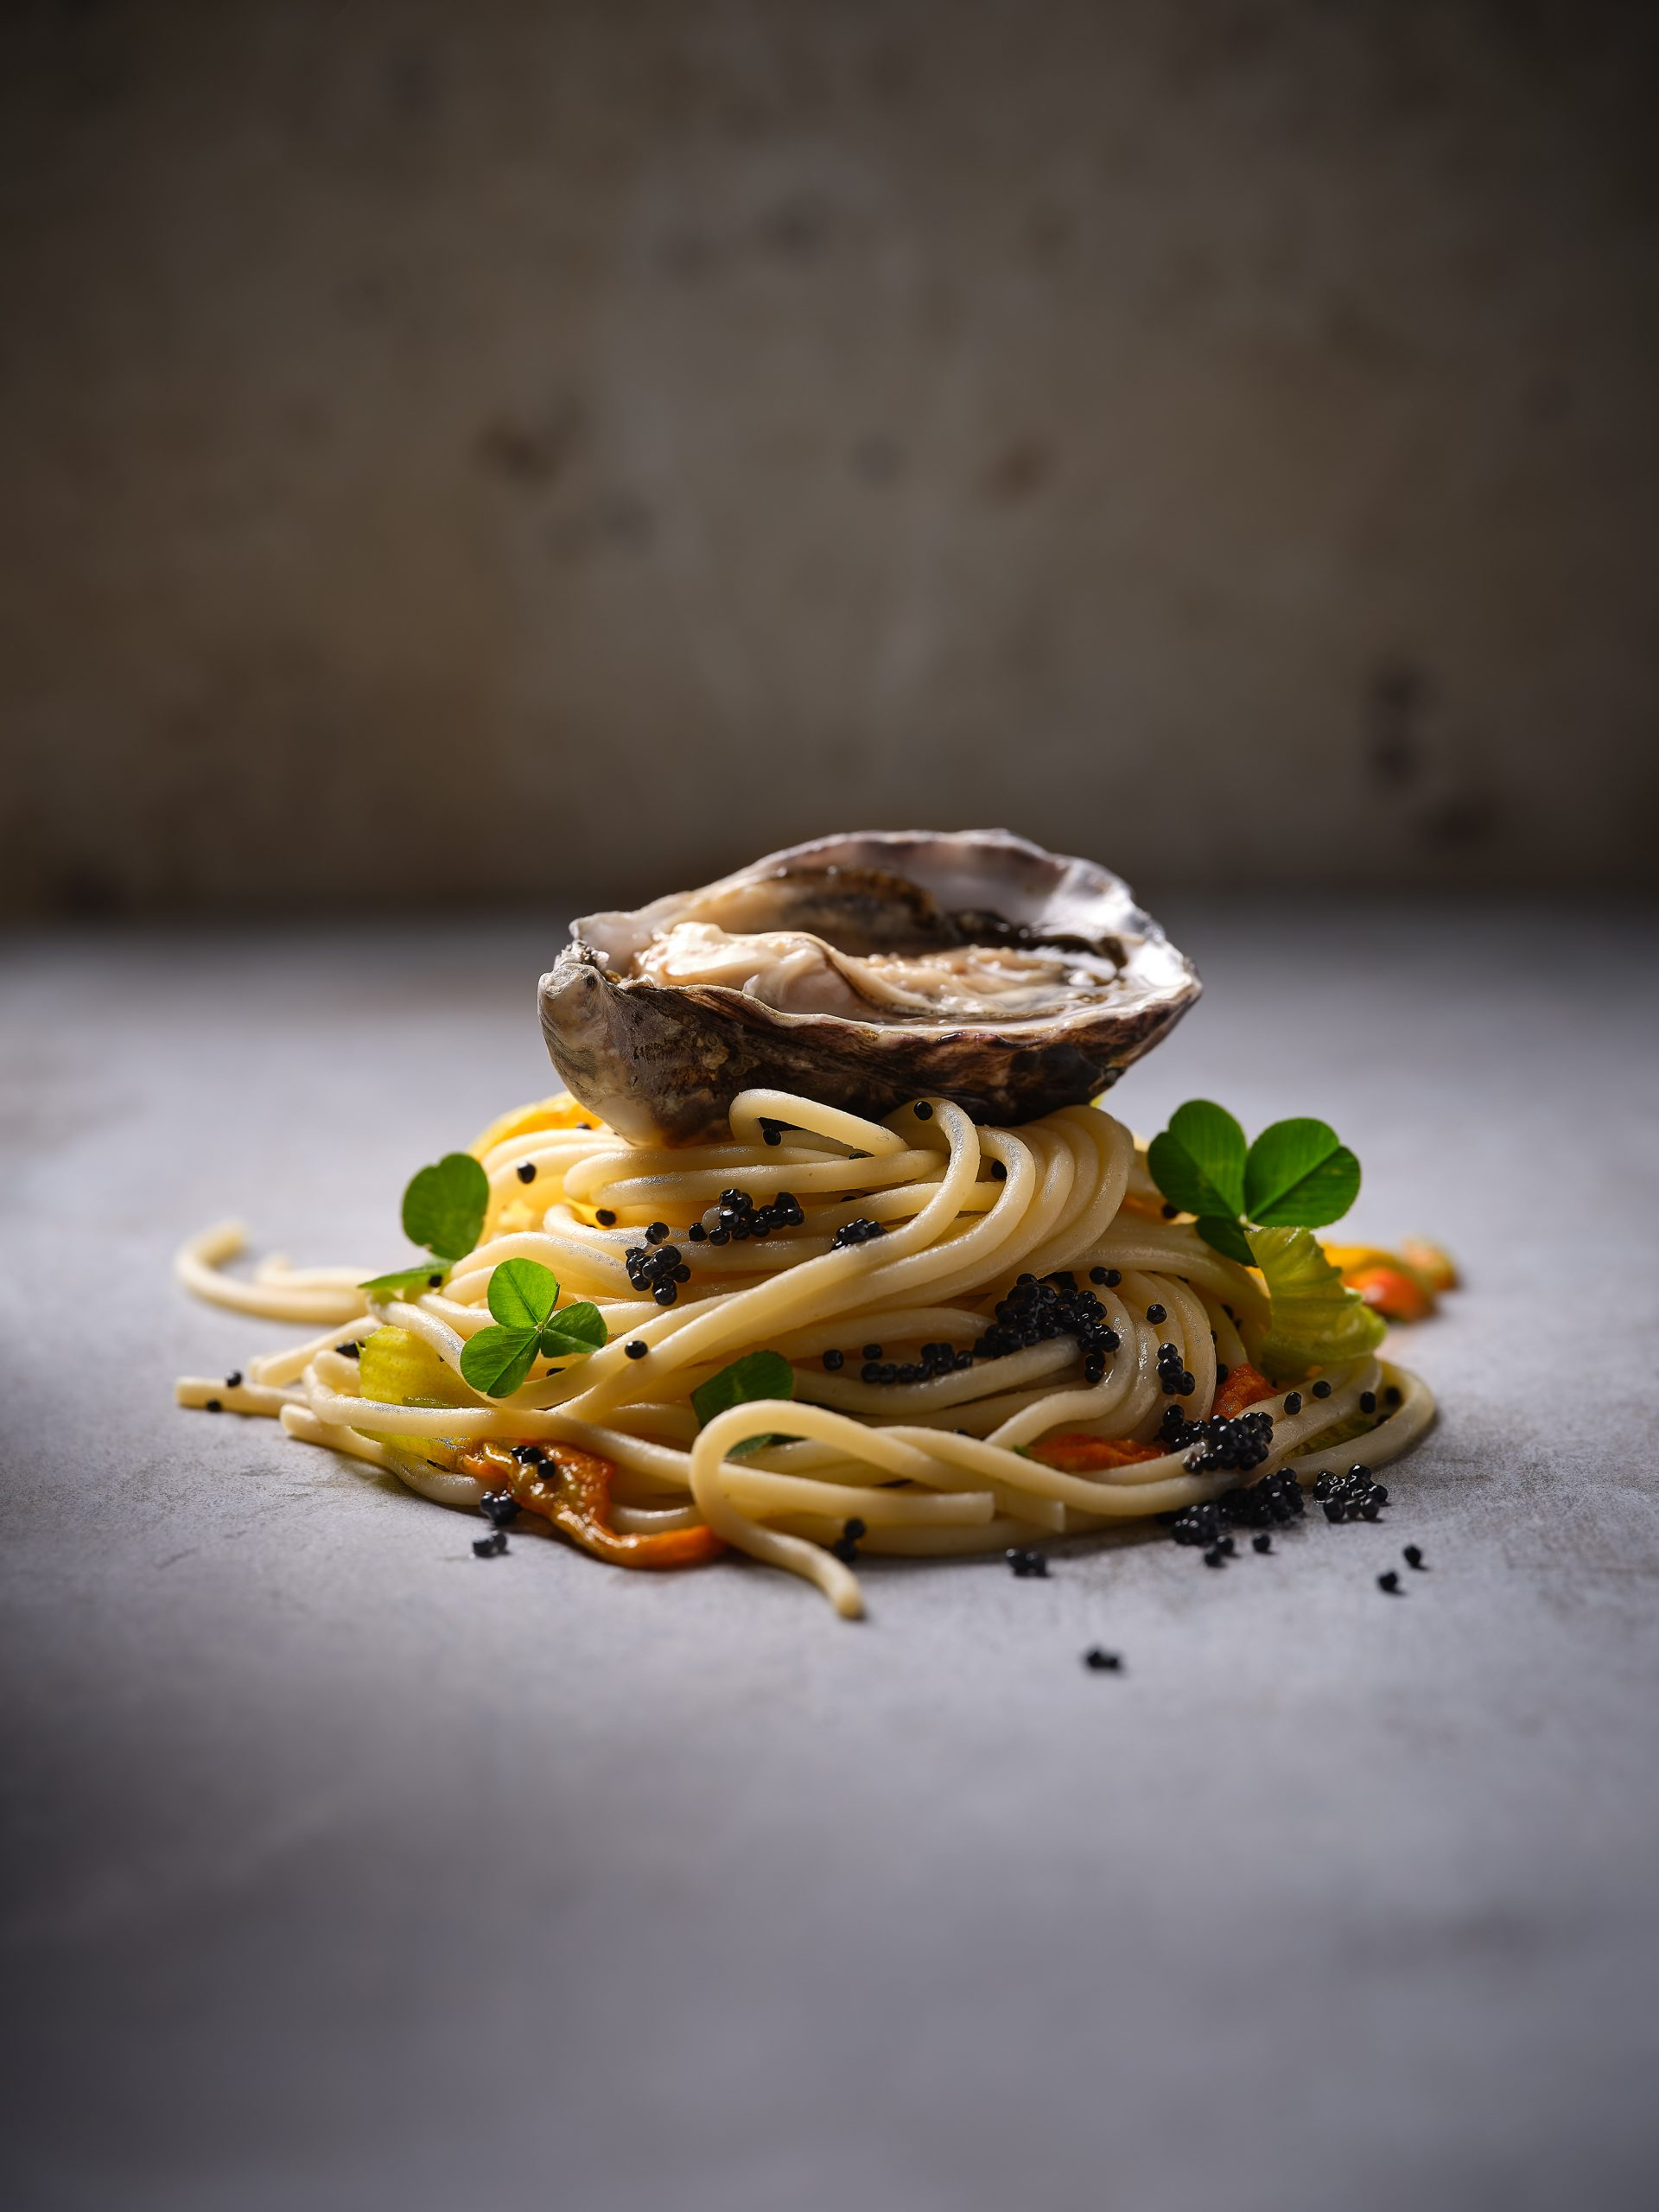 a nest of spaghetti pasta are garnished on top with an oyster